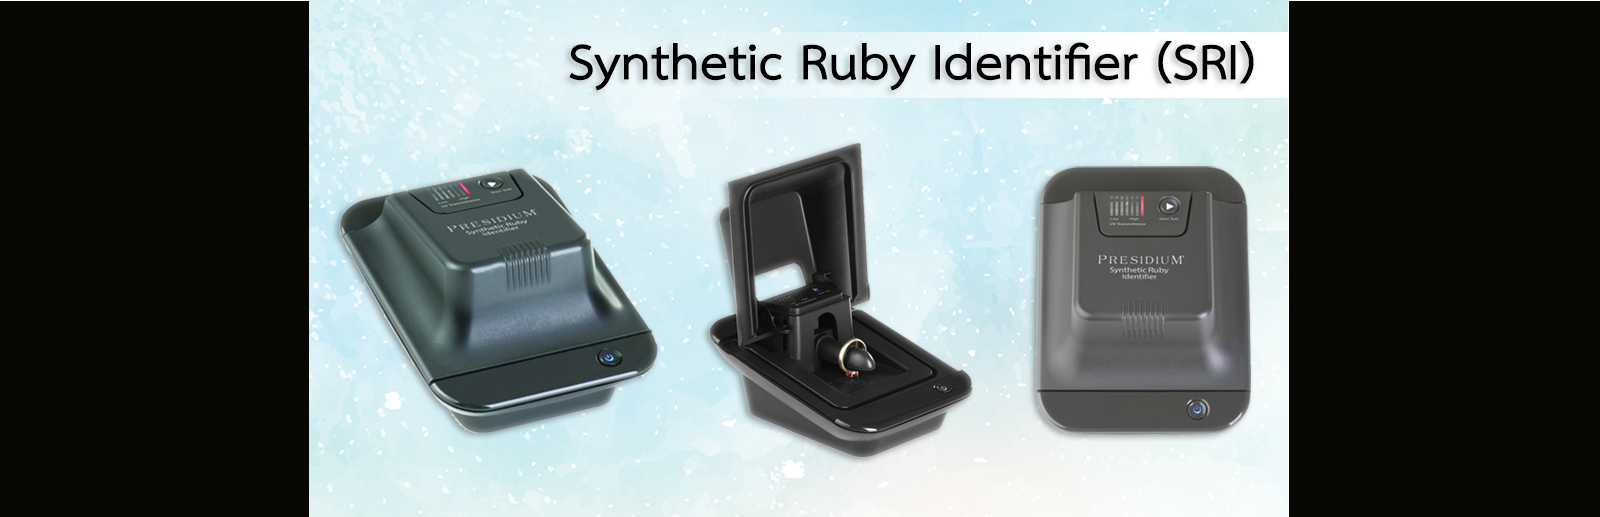 Synthetic Ruby Identifier (SRI)